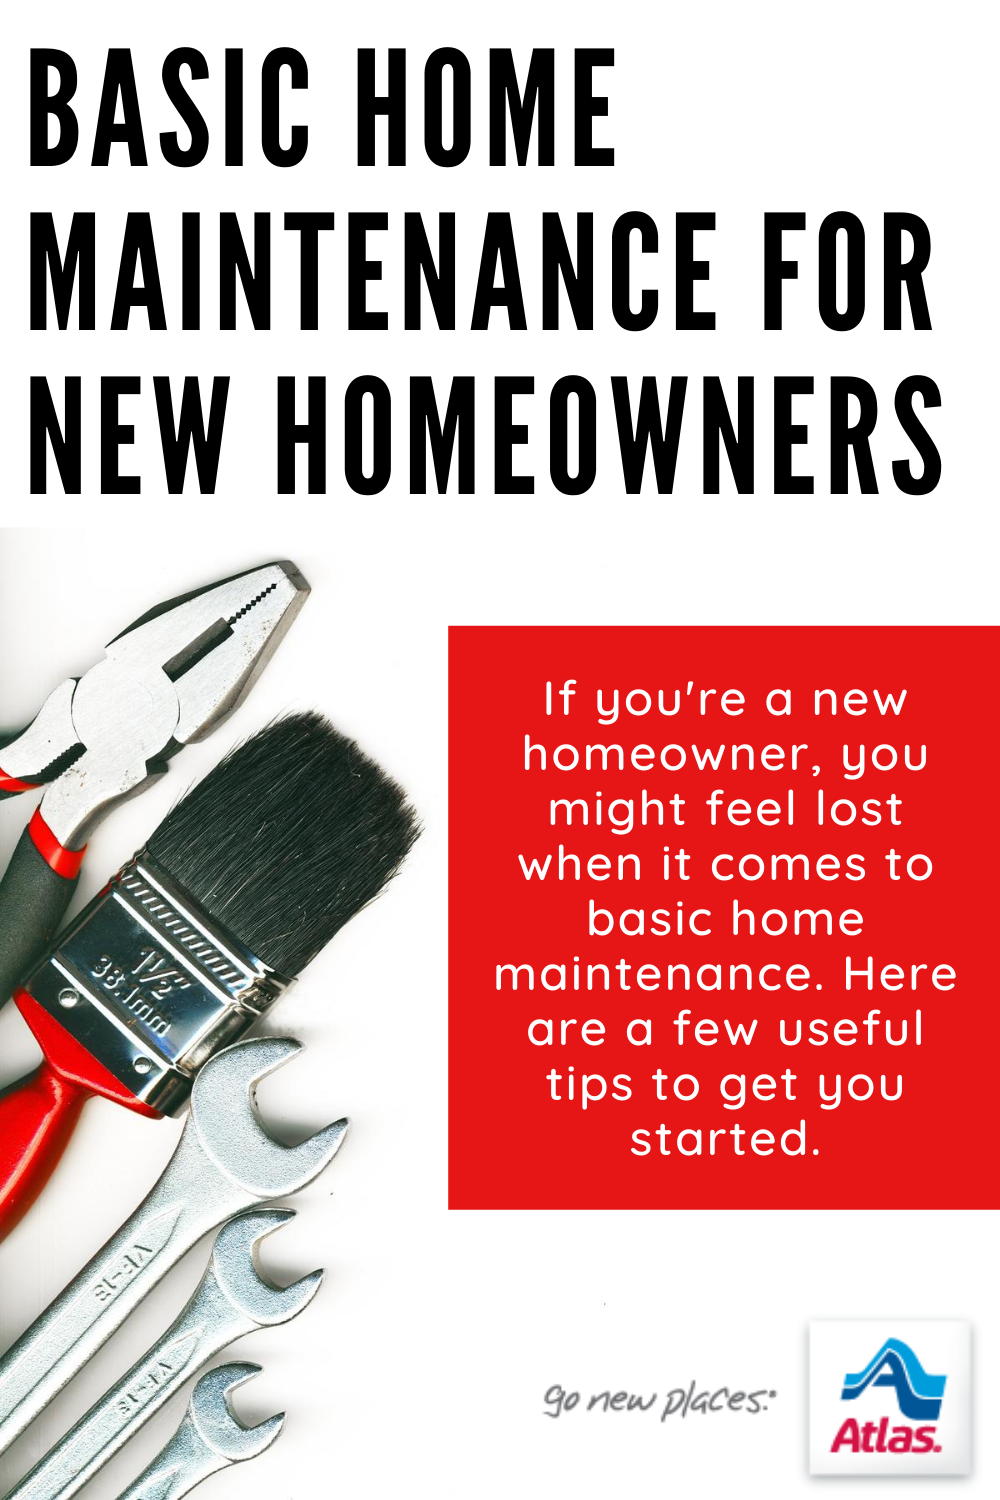 If you're a new homeowner, you might feel lost when it comes to basic home maintenance. Here are a few useful tips to get you started.